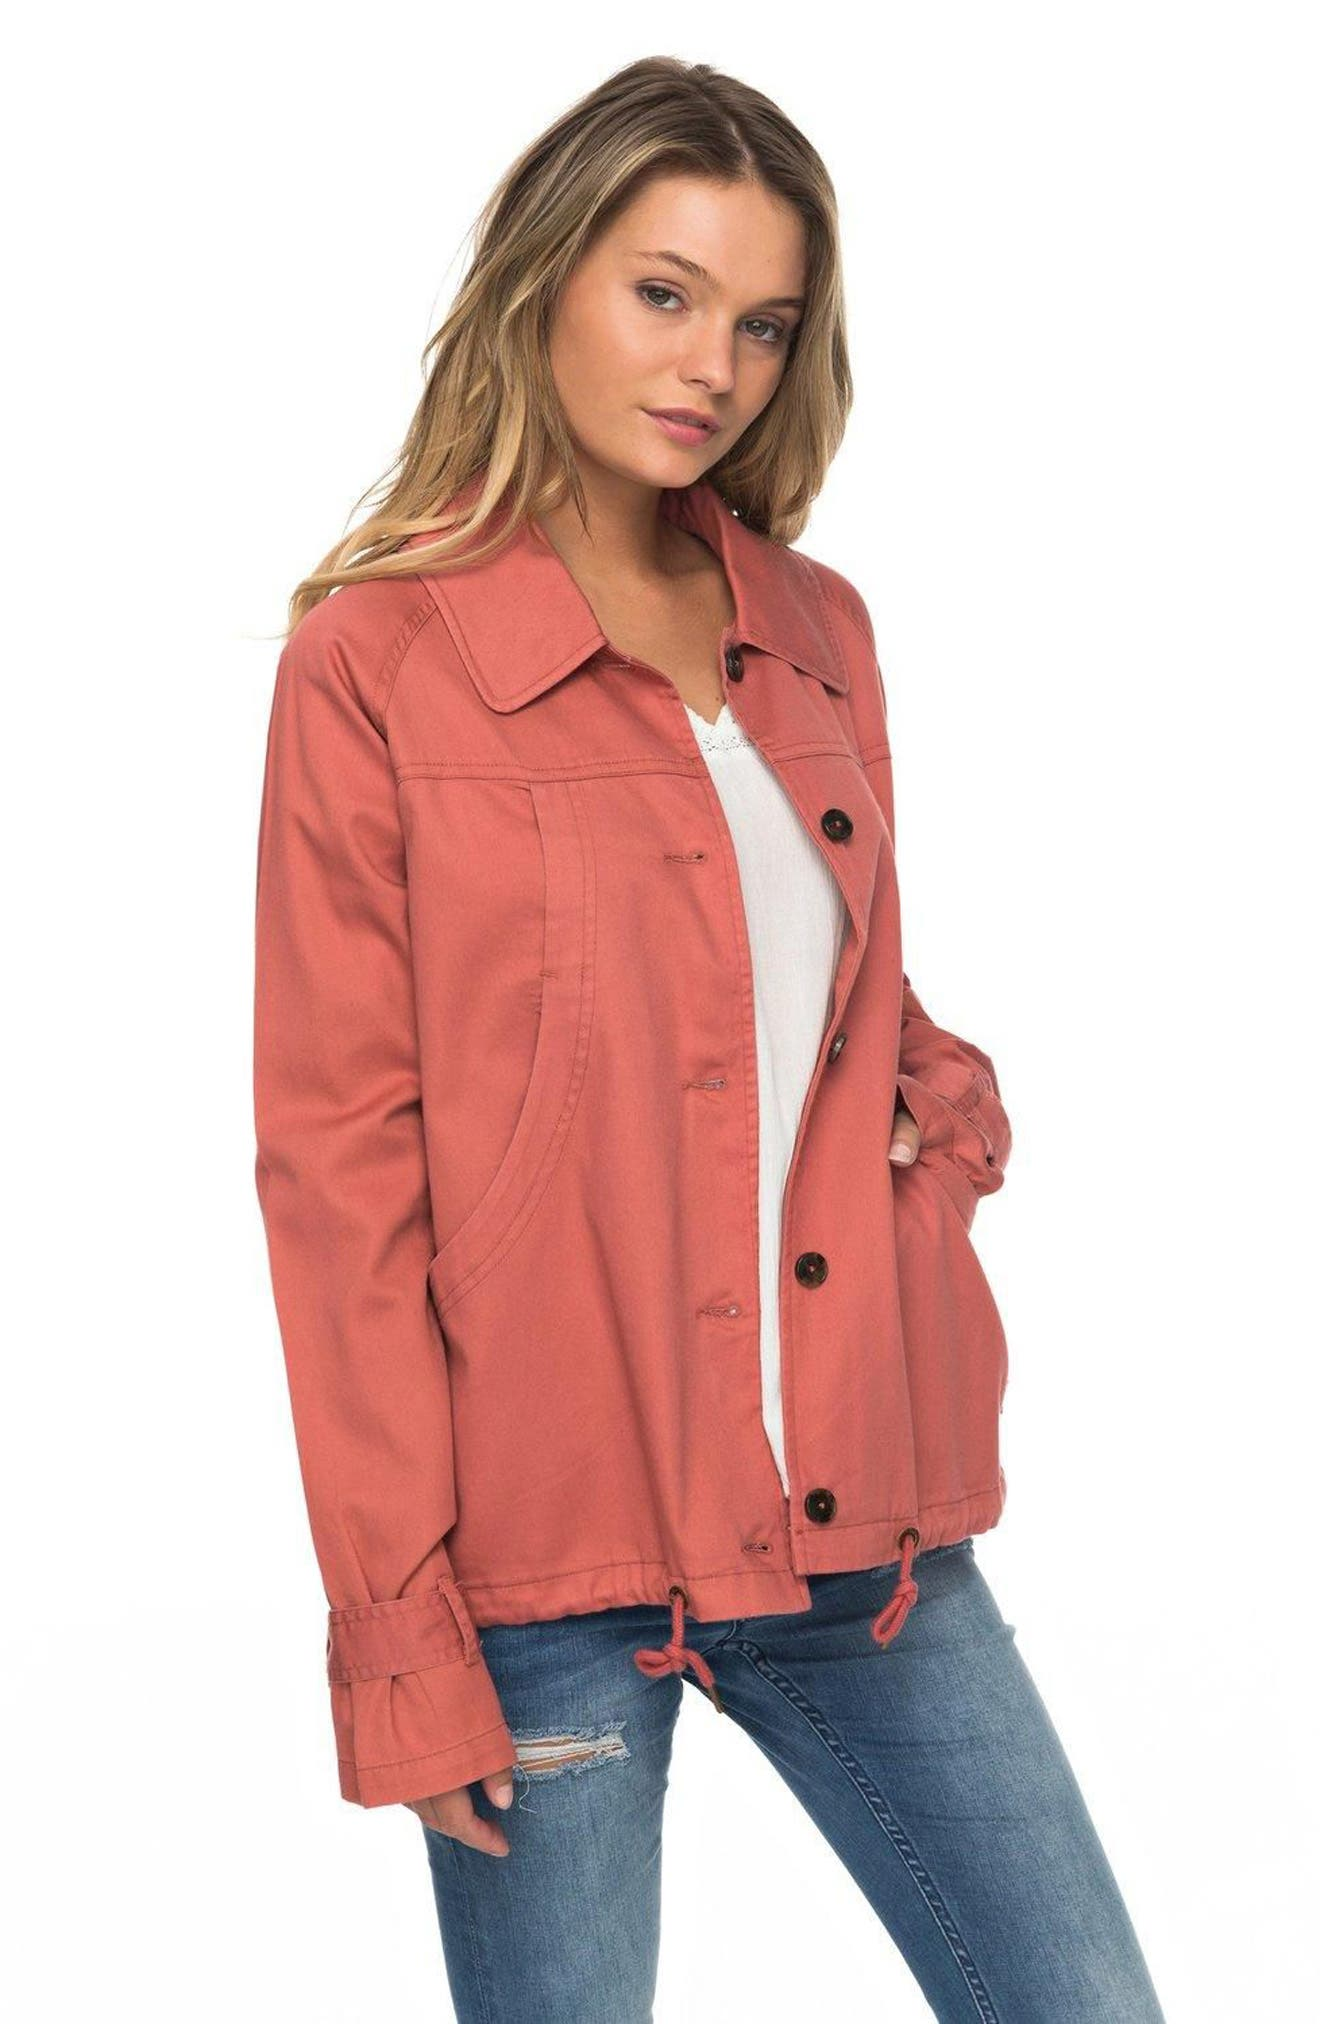 Dream Away Jacket,                             Alternate thumbnail 3, color,                             Dusty Cedar